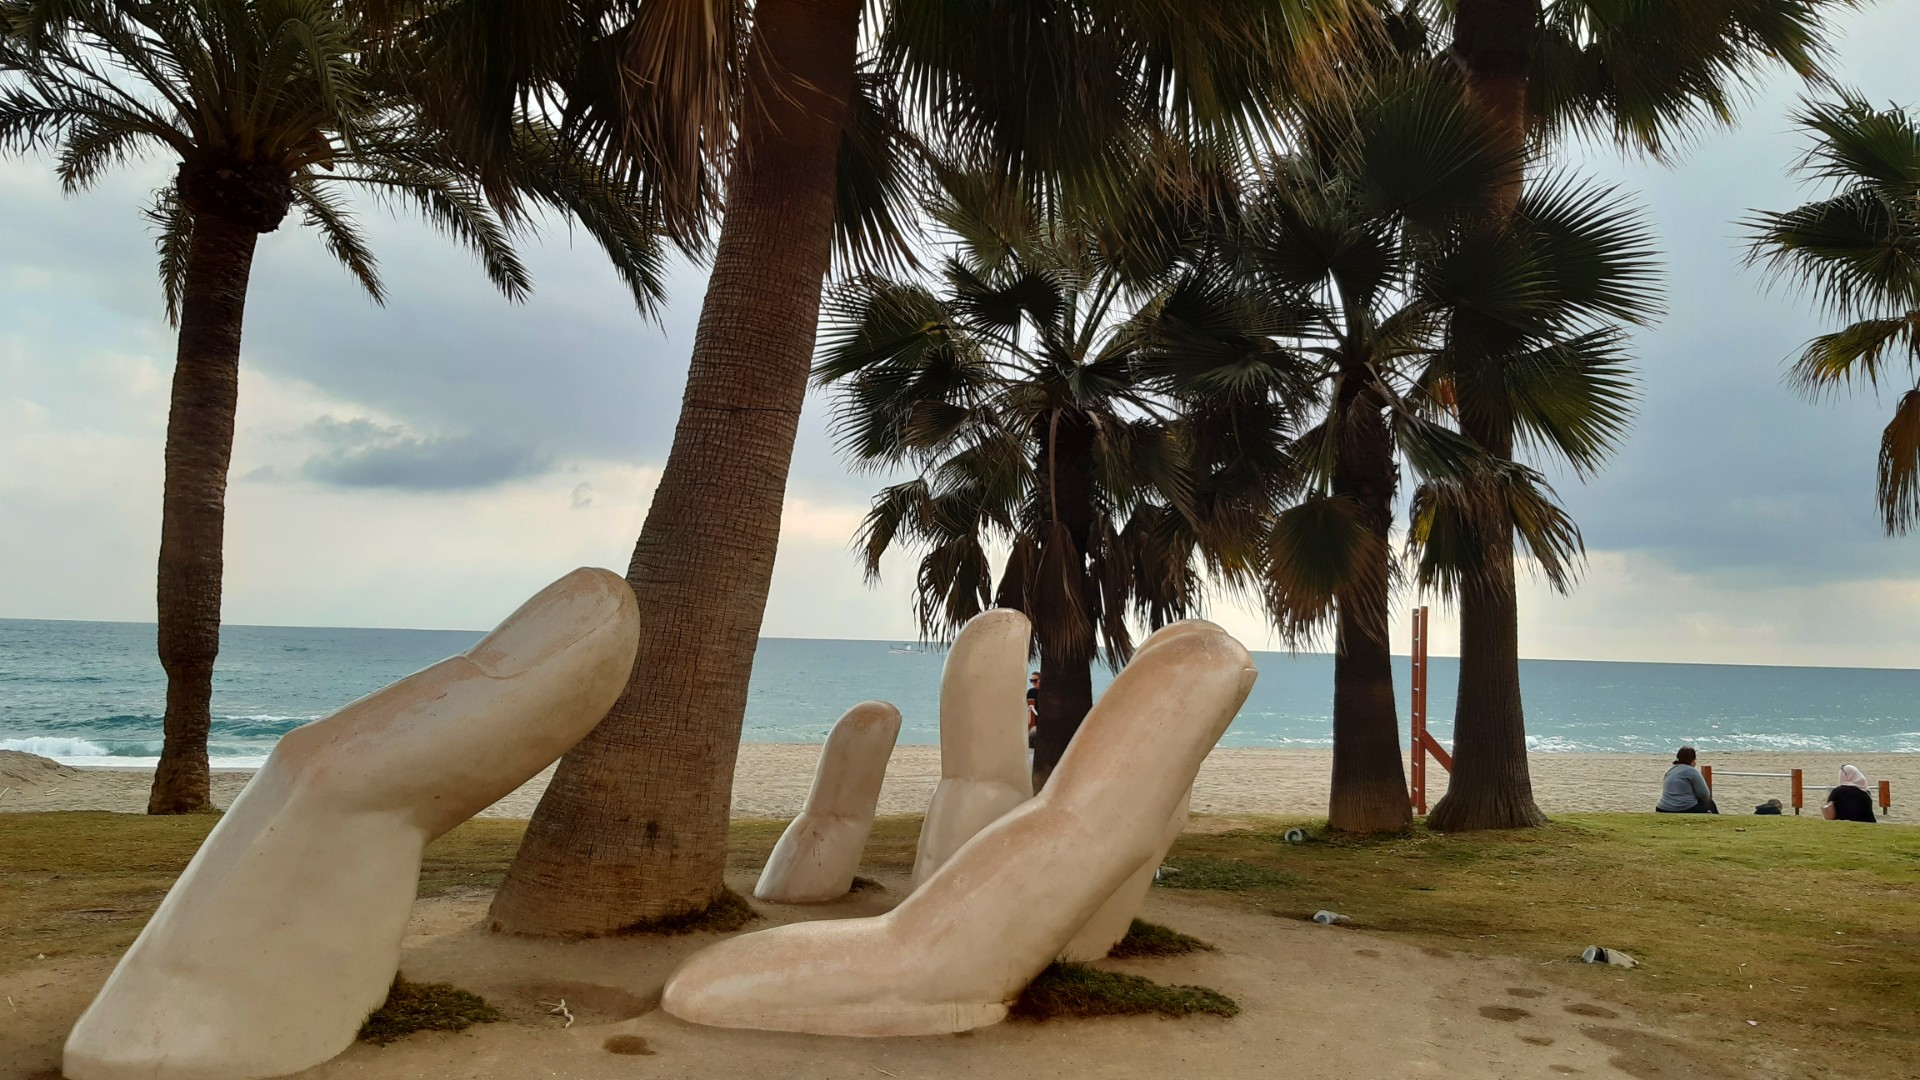 Where to Stay in Fuengirola - Best Areas and Hotels